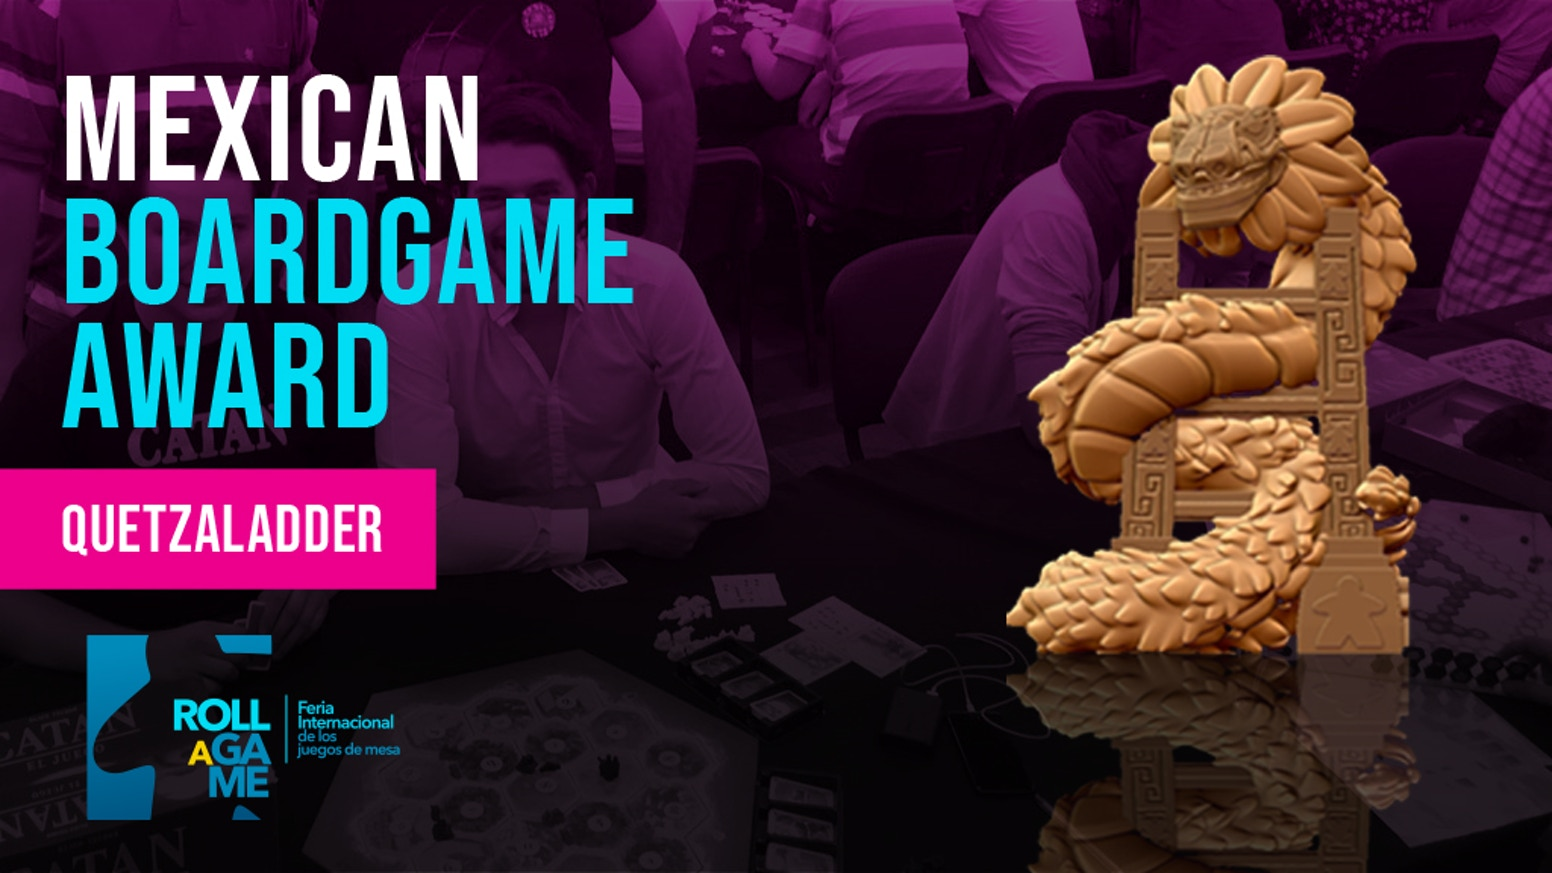 Quetzaladder Award 2018 Roll A Game Expo By La Caravana Gamelab